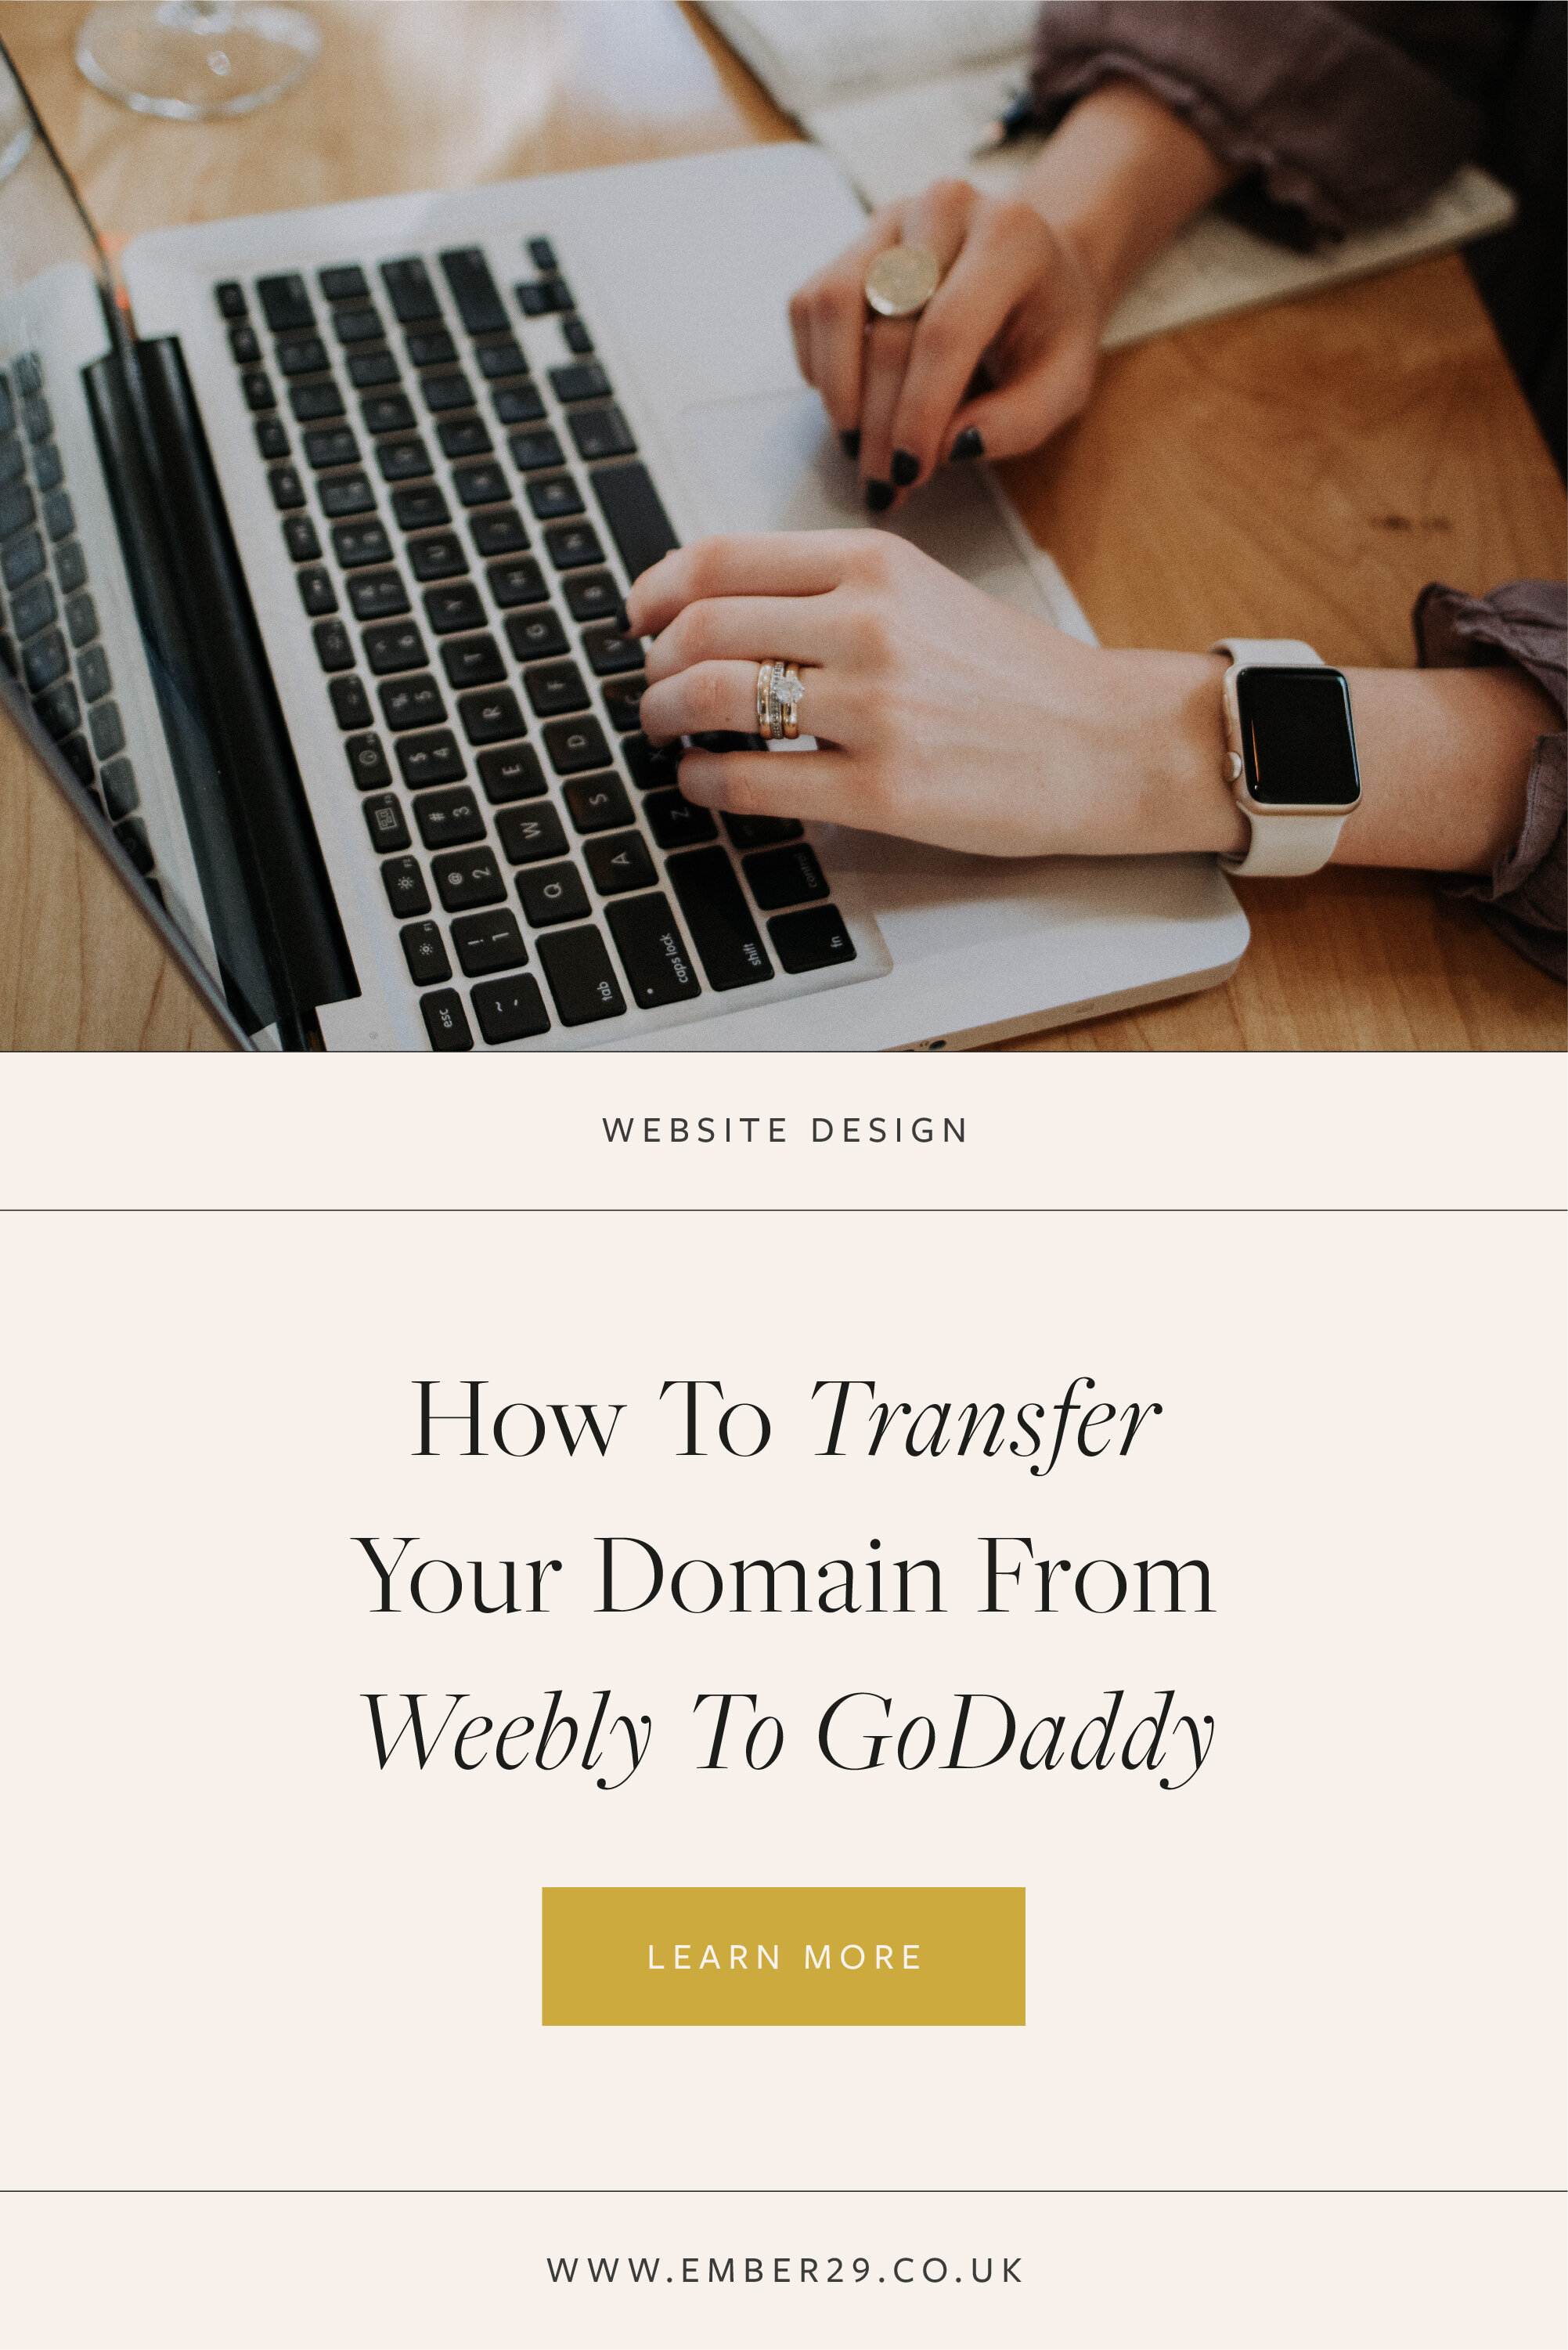 How To Transfer Your Domain From Weebly To GoDaddy